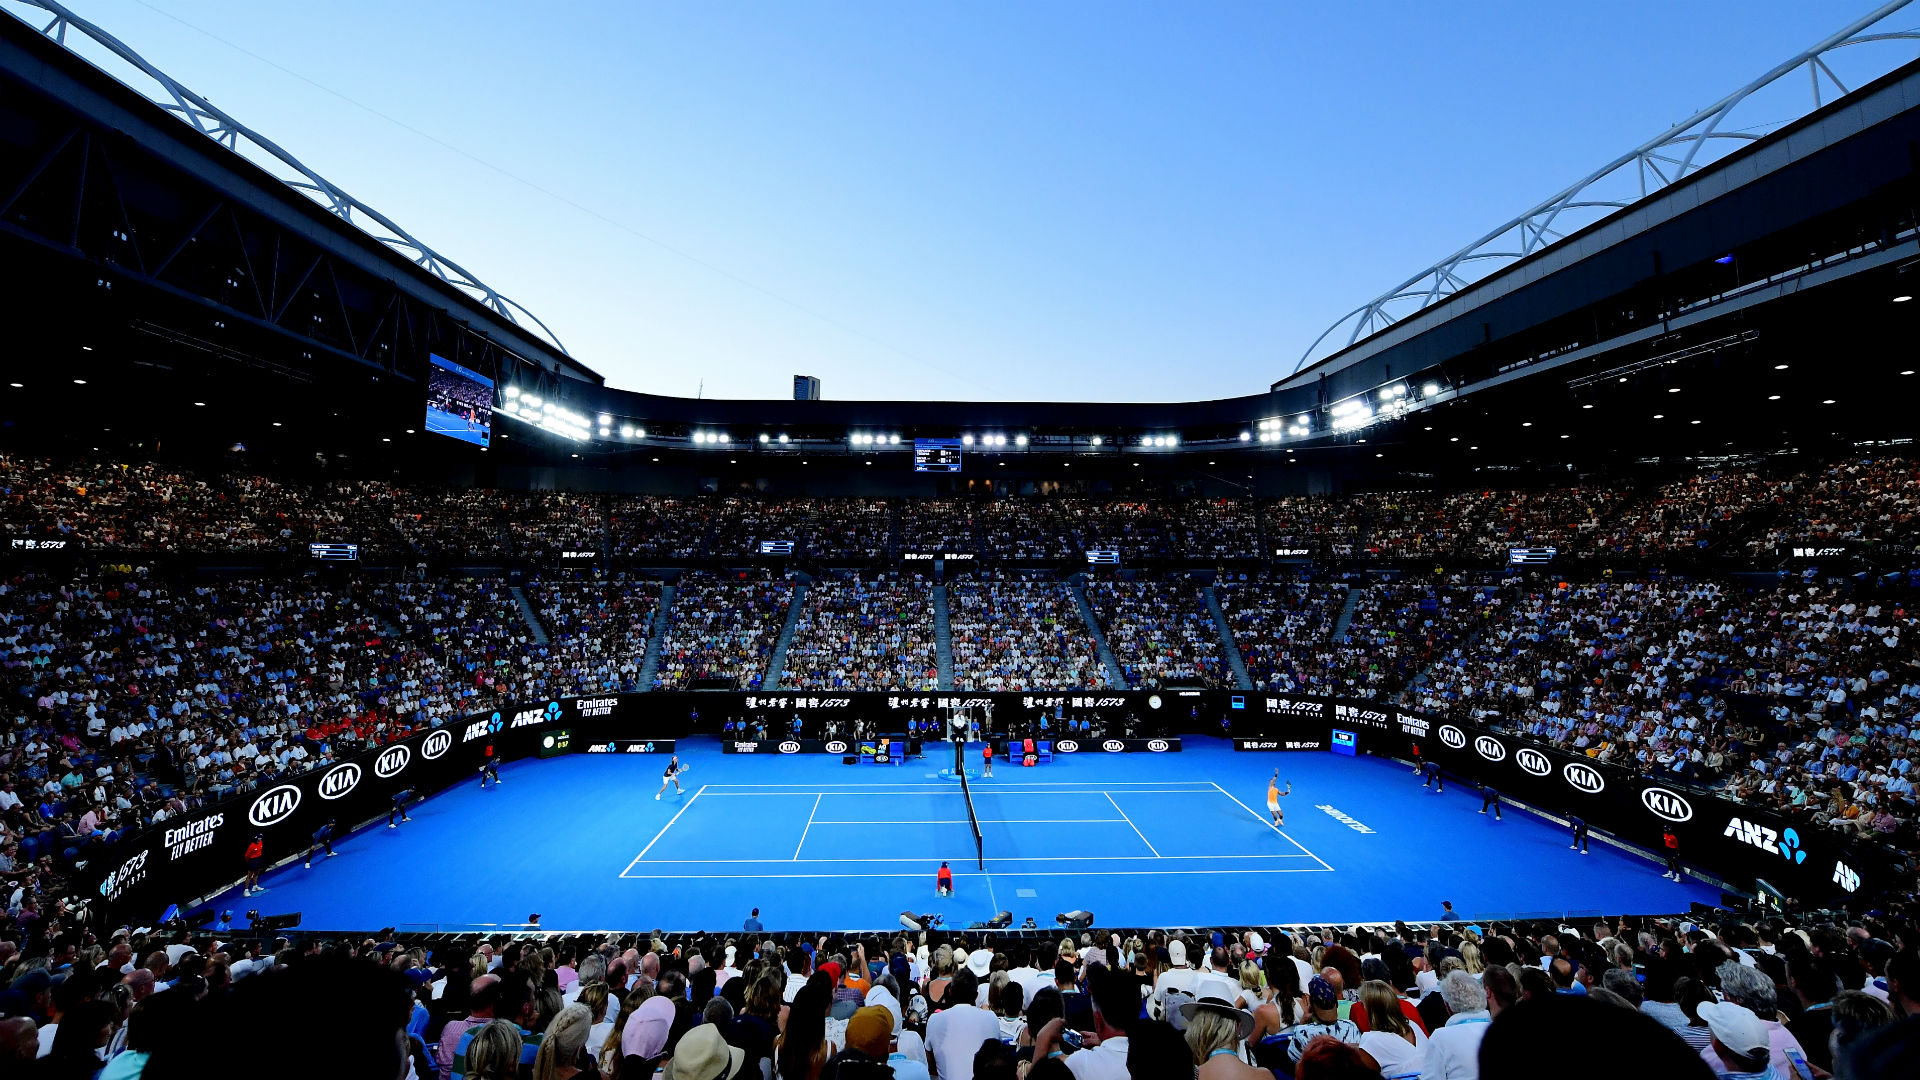 Australian Open Final When Is The Australian Open Final How To